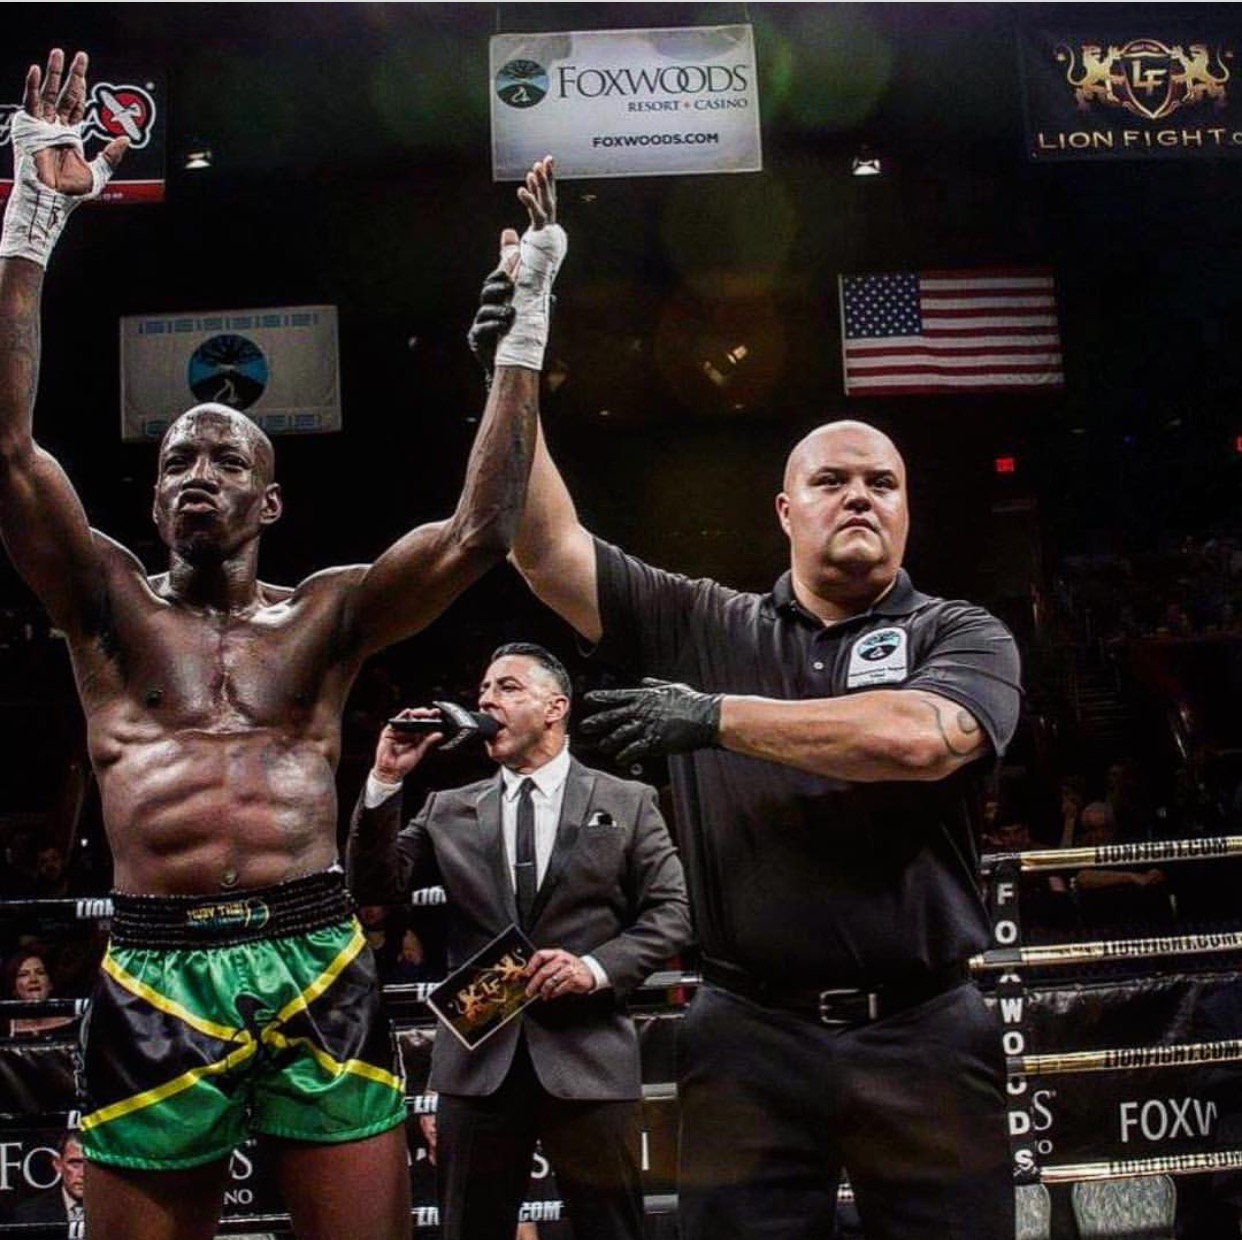 Shawn Ellis Wins His Muay Thai Lions Fight Debut! - Andersons Martial Arts New York City